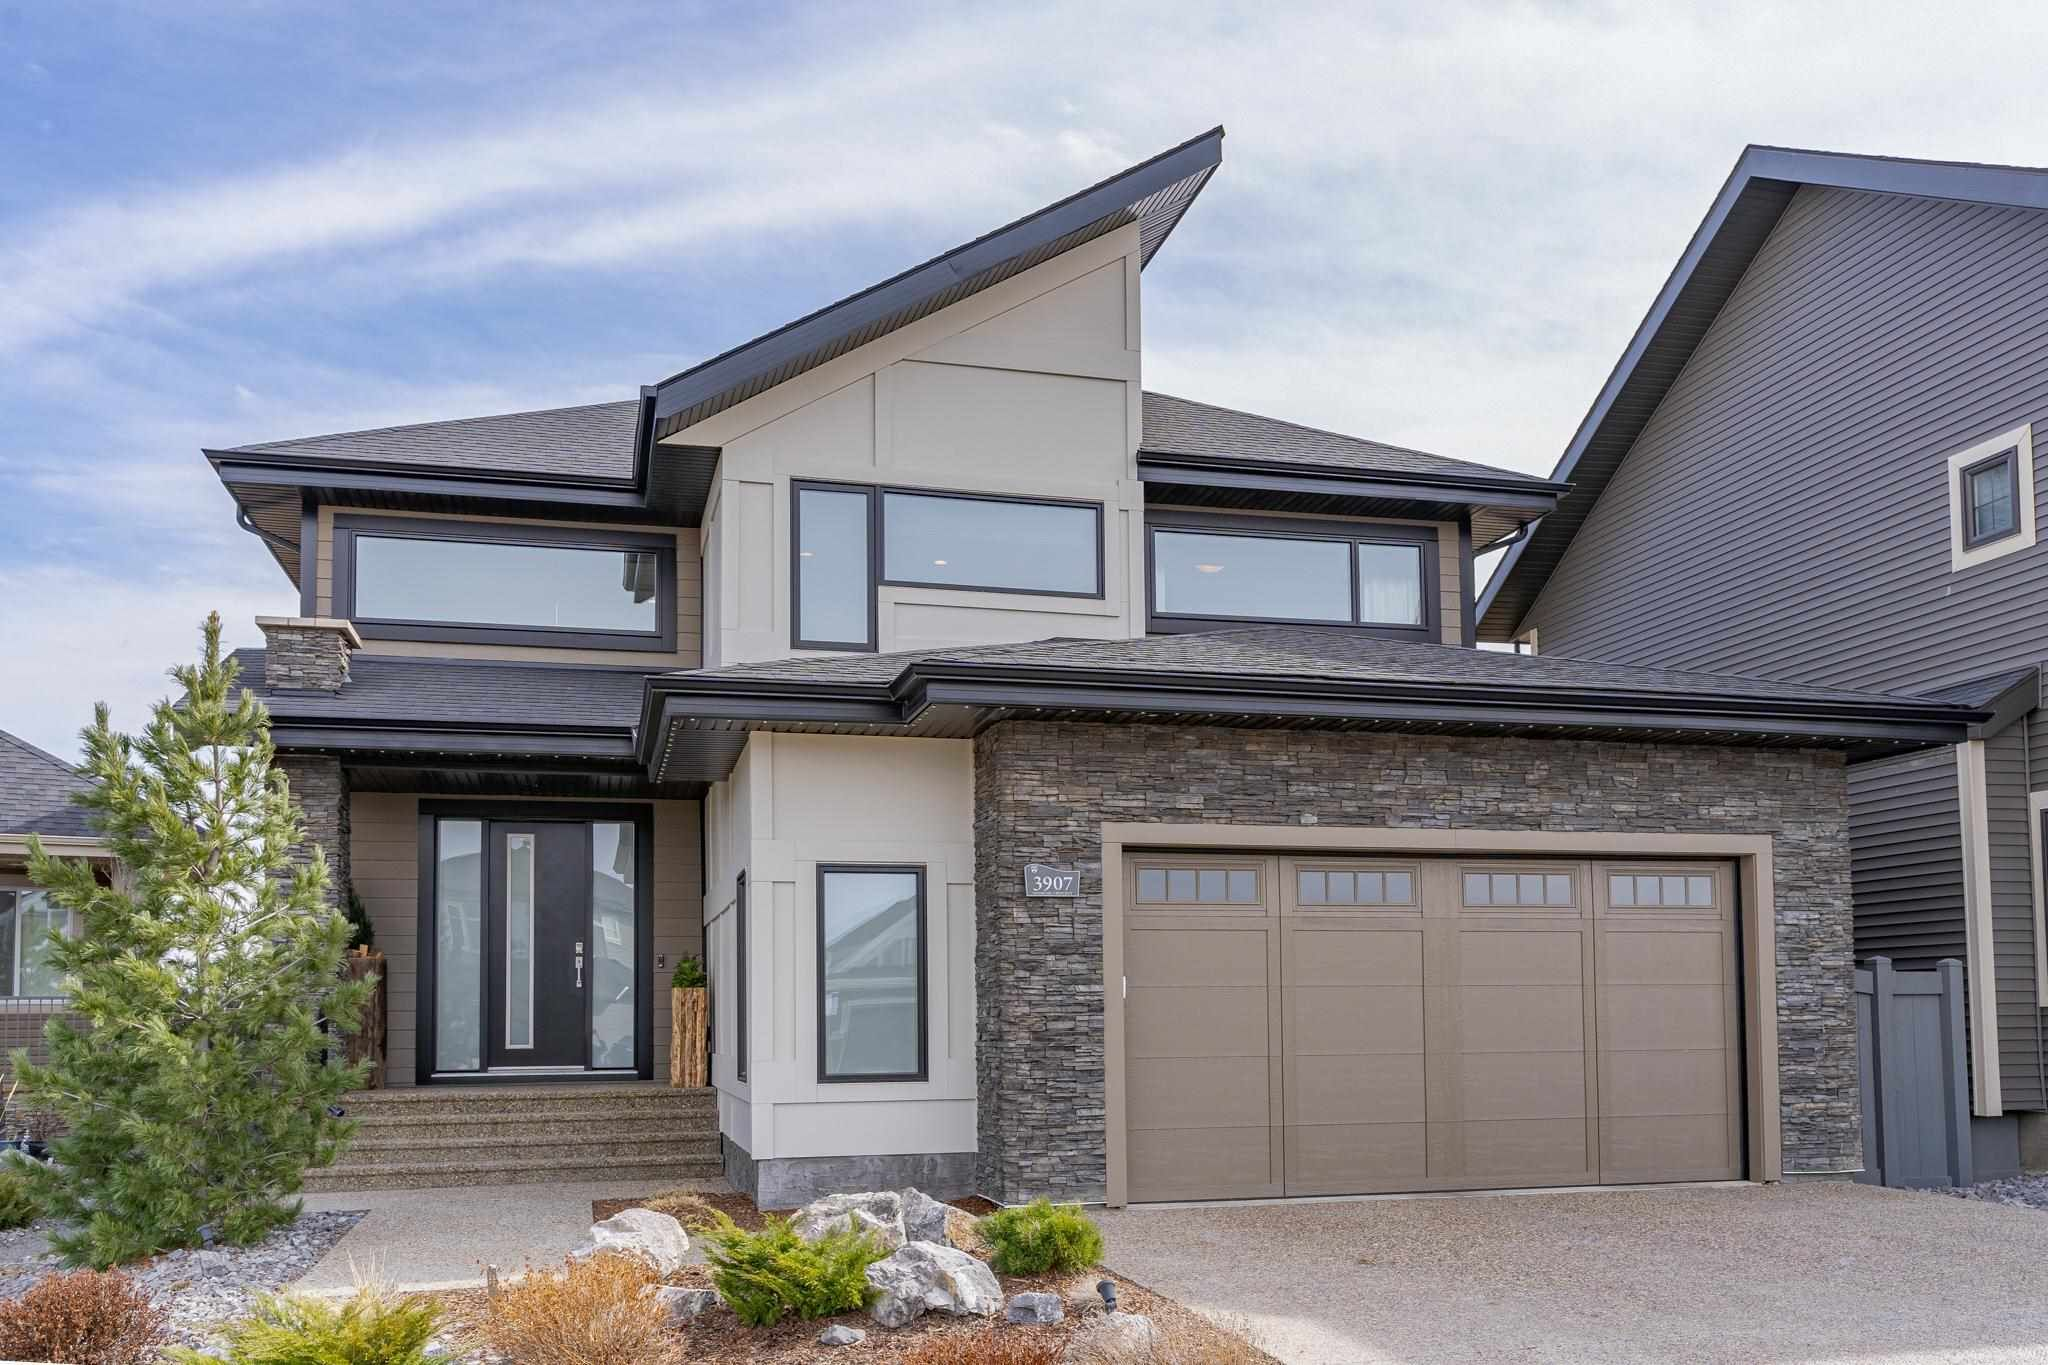 Main Photo: 3907 GINSBURG Crescent in Edmonton: Zone 58 House for sale : MLS®# E4257275